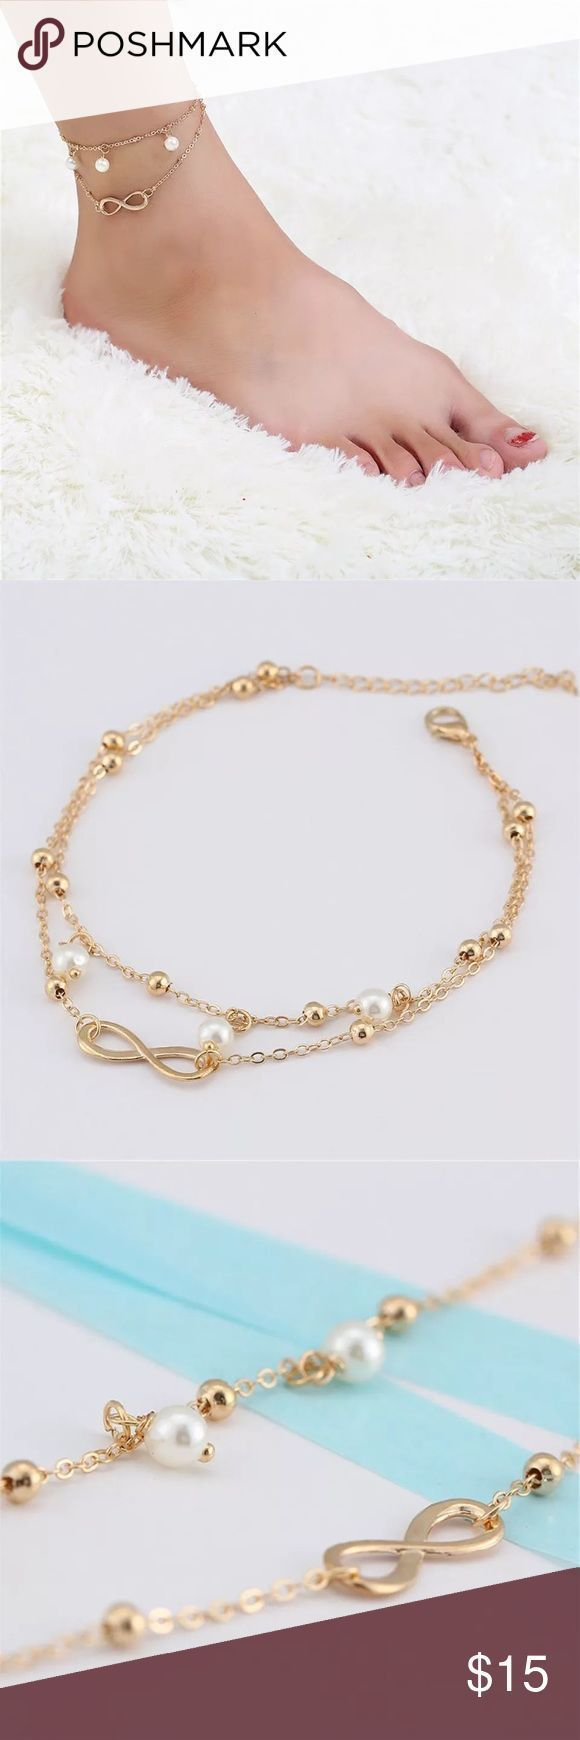 women bracelet of xs lyst sweetie vermeil london links in anklet s gold metallic jewelry